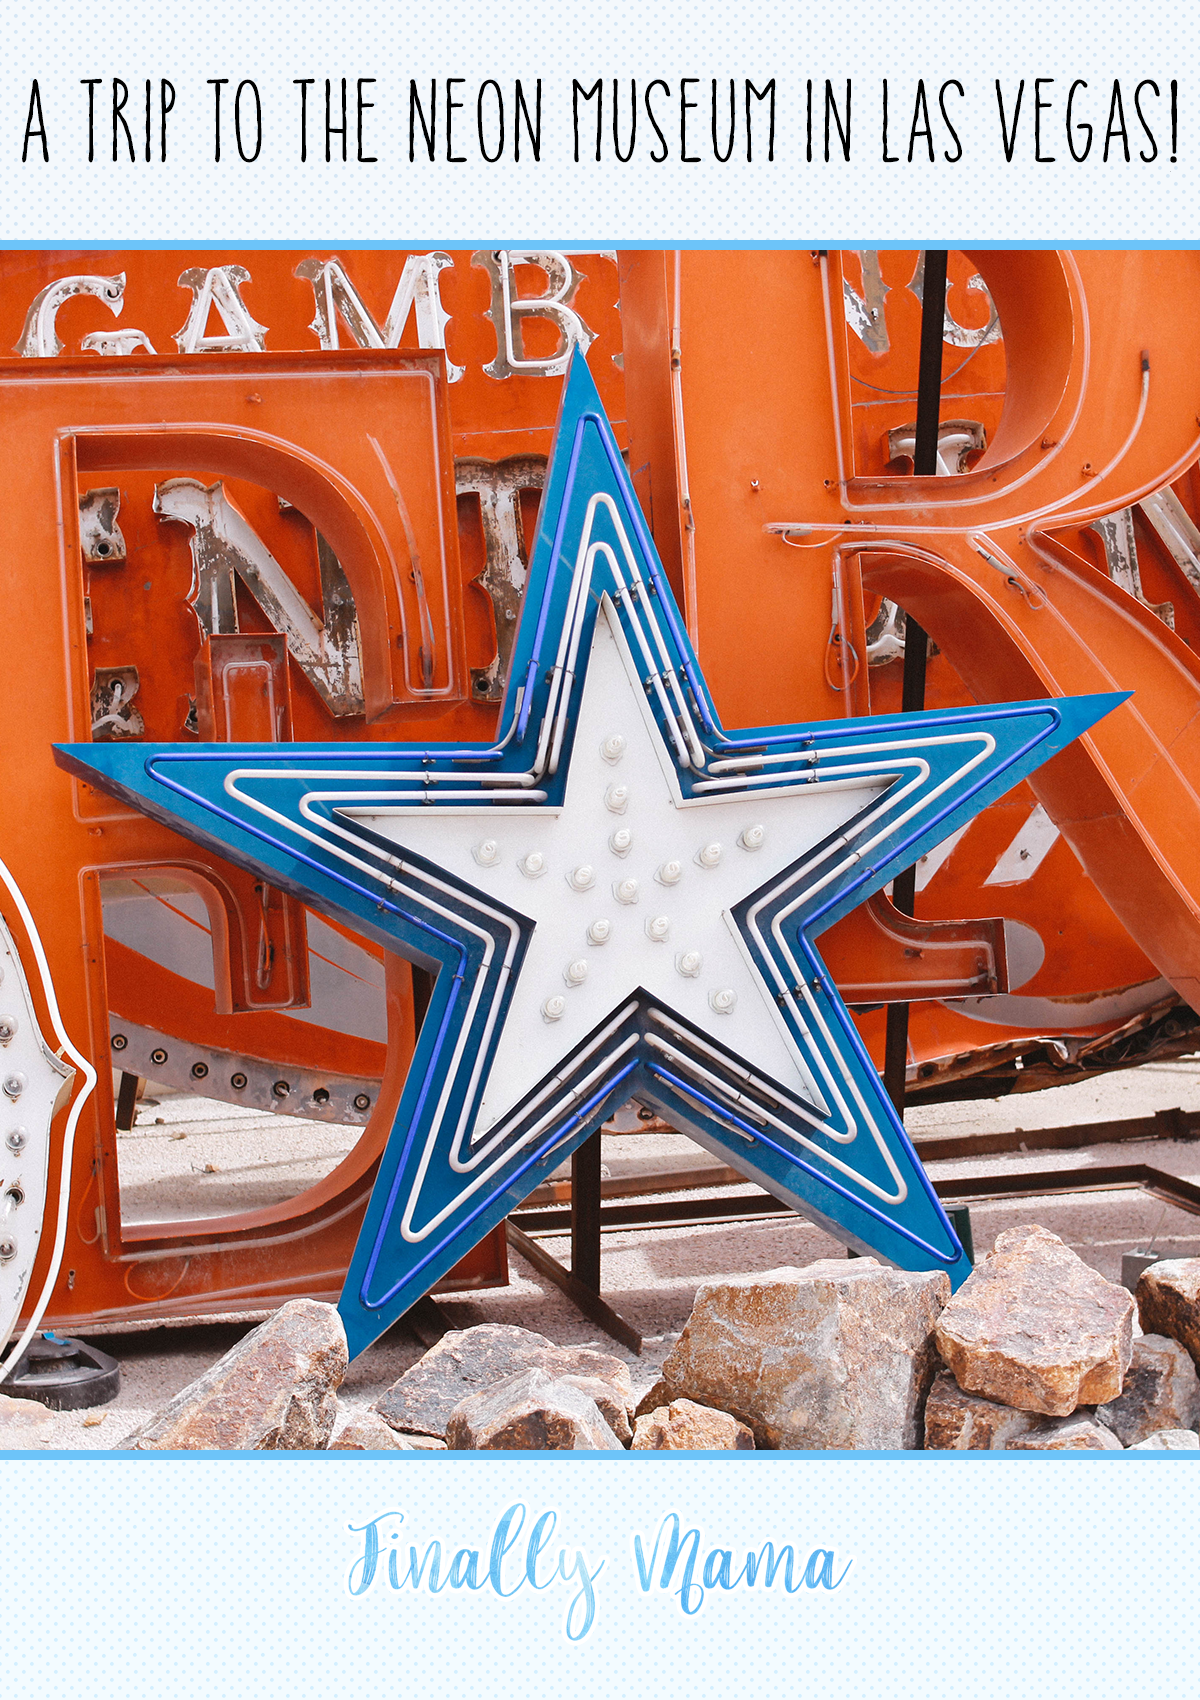 A Trip To The Neon Museum In Las Vegas!